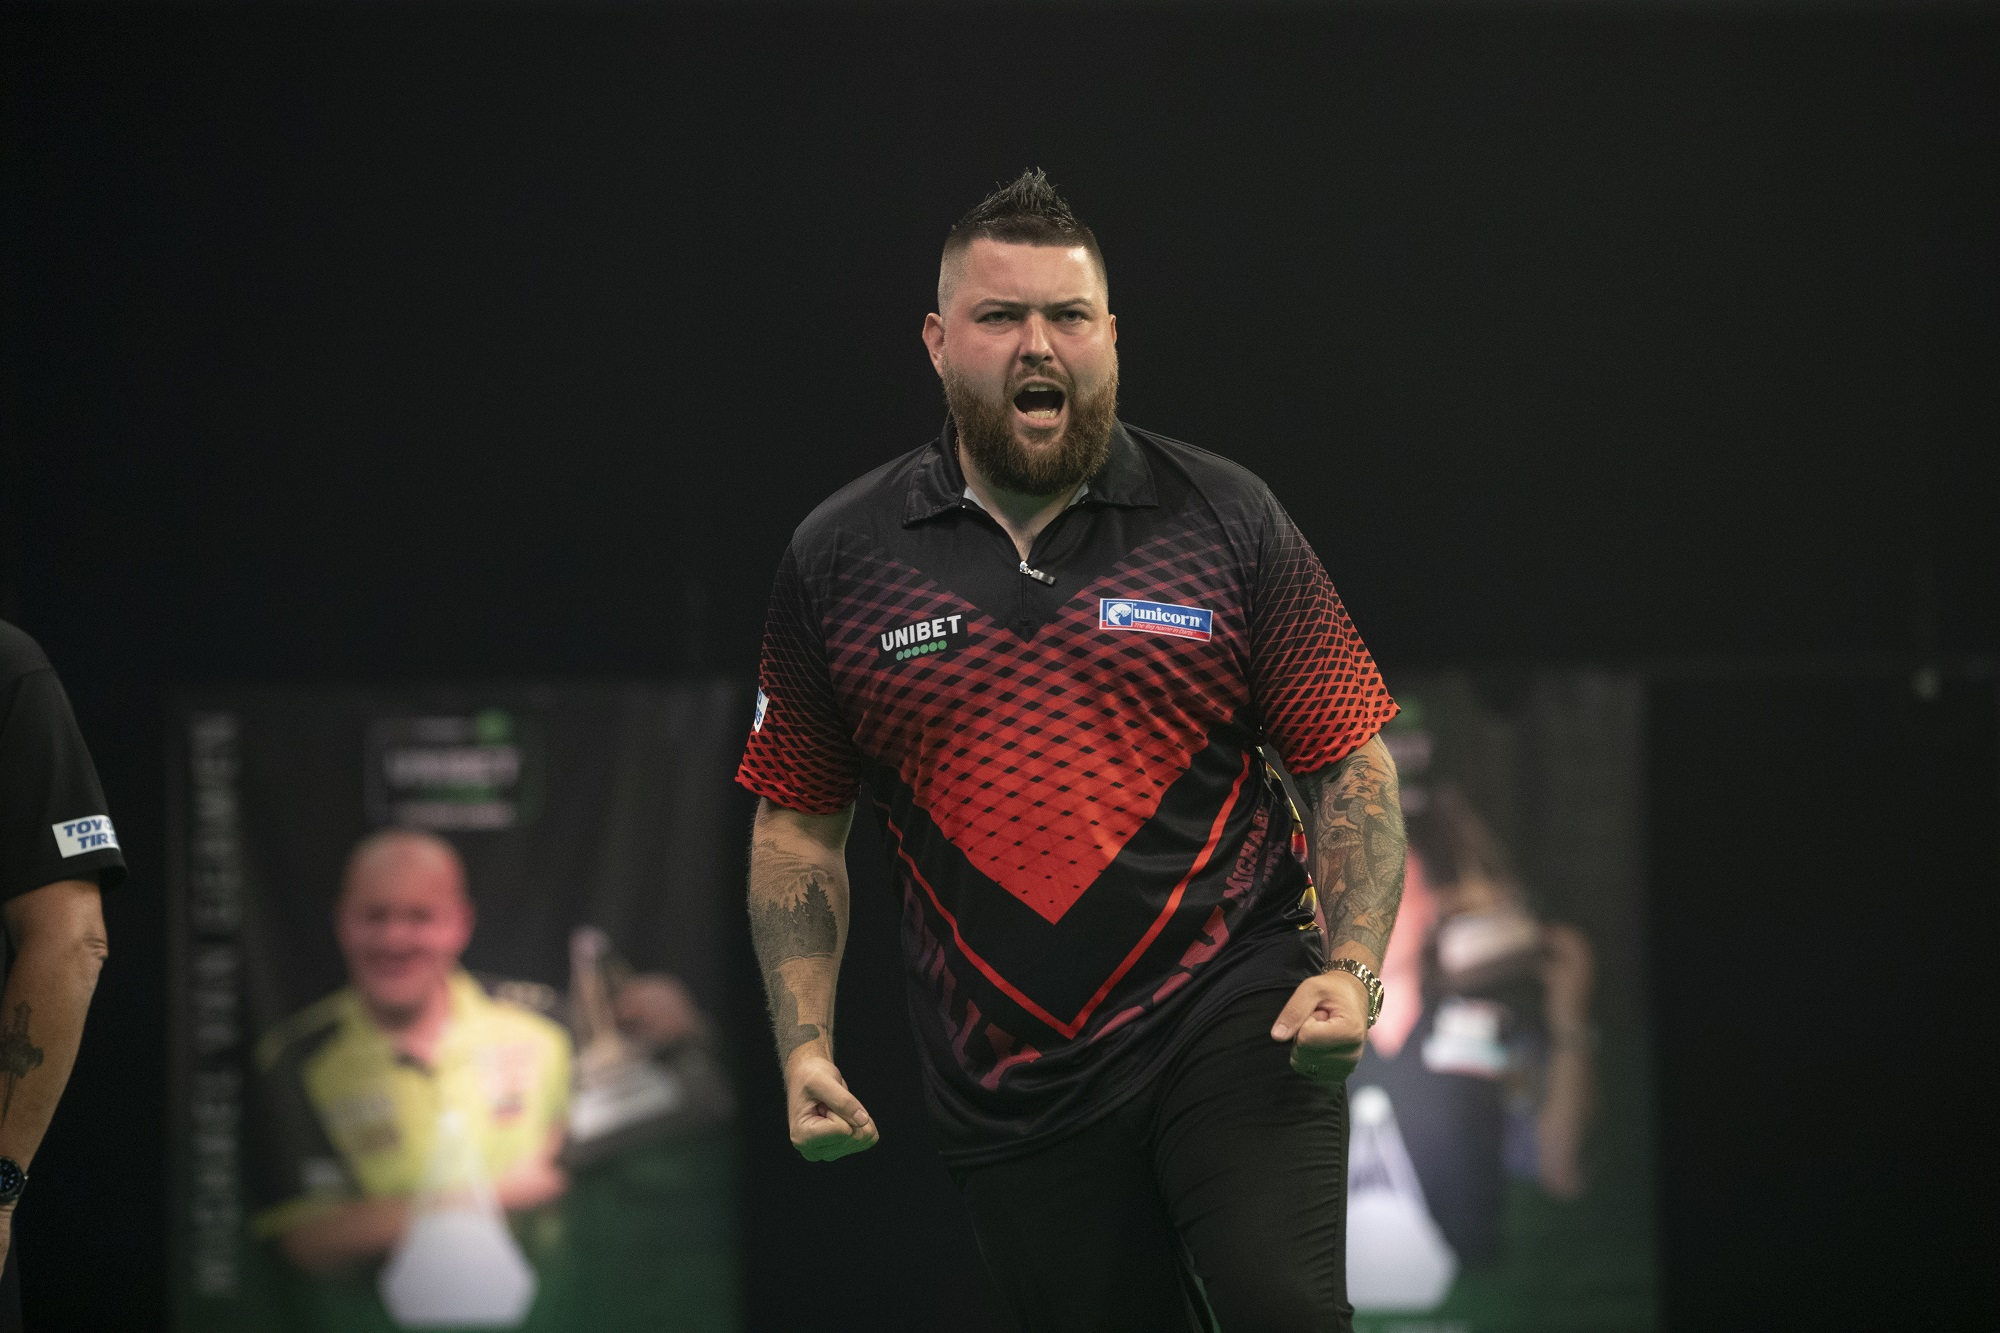 Smith secures first title of 2021 at PDC Super Series